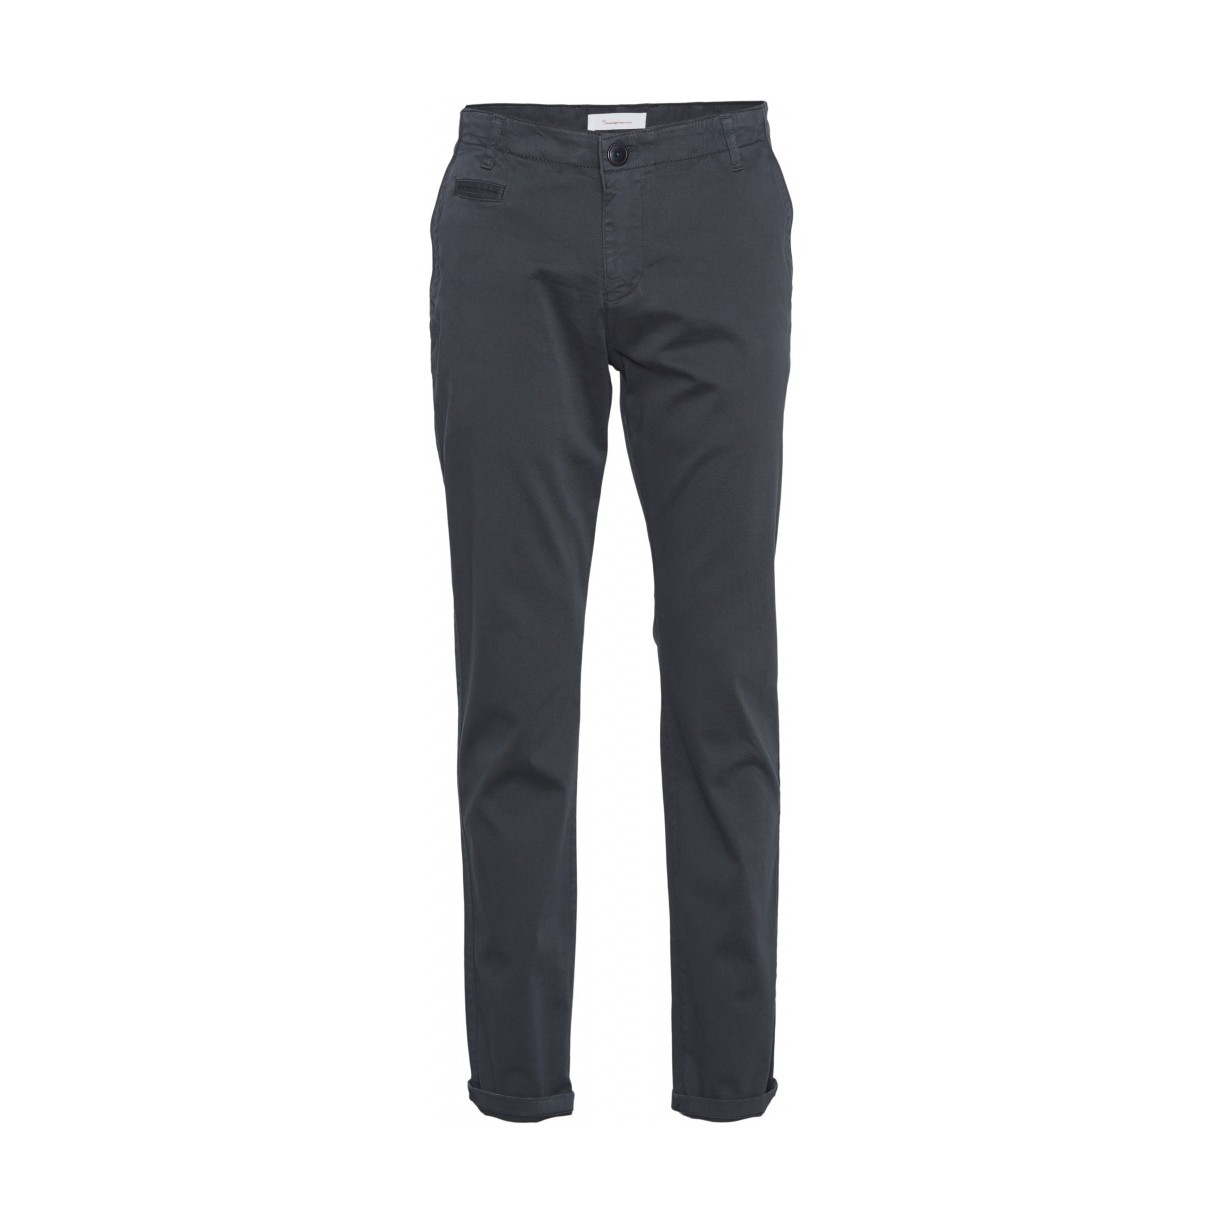 Chuck stretched twill chino - Vegan Total Eclipse